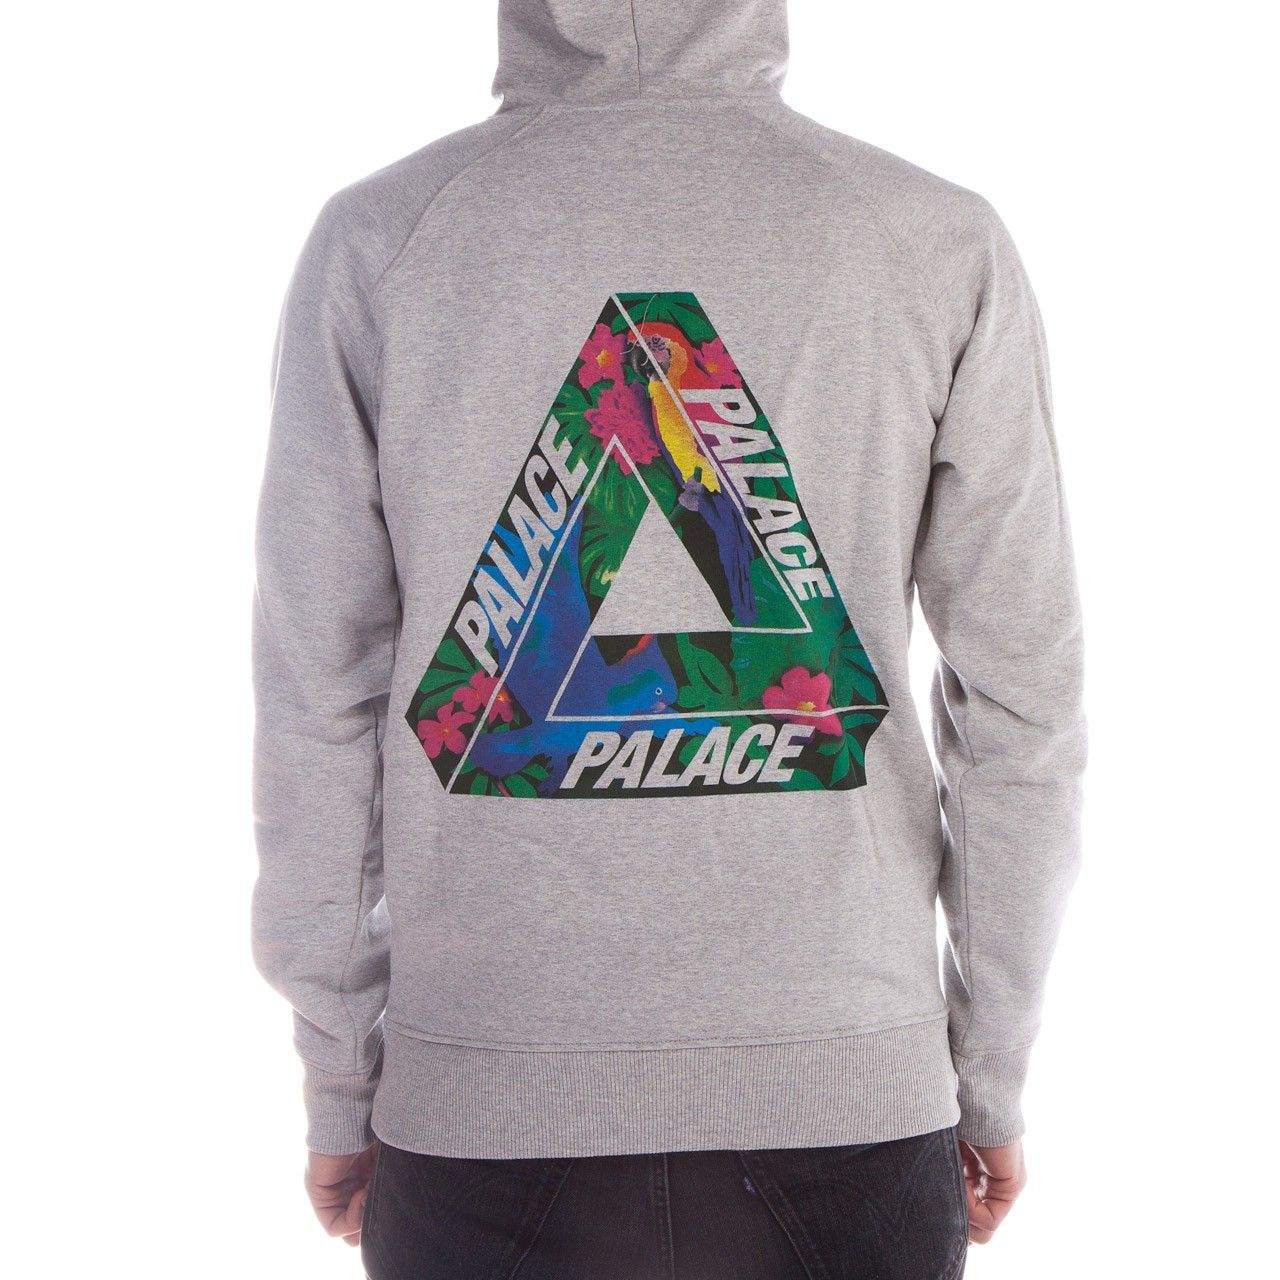 Palace Skateboards Hoodie | Fashion | Pinterest | Streetwear